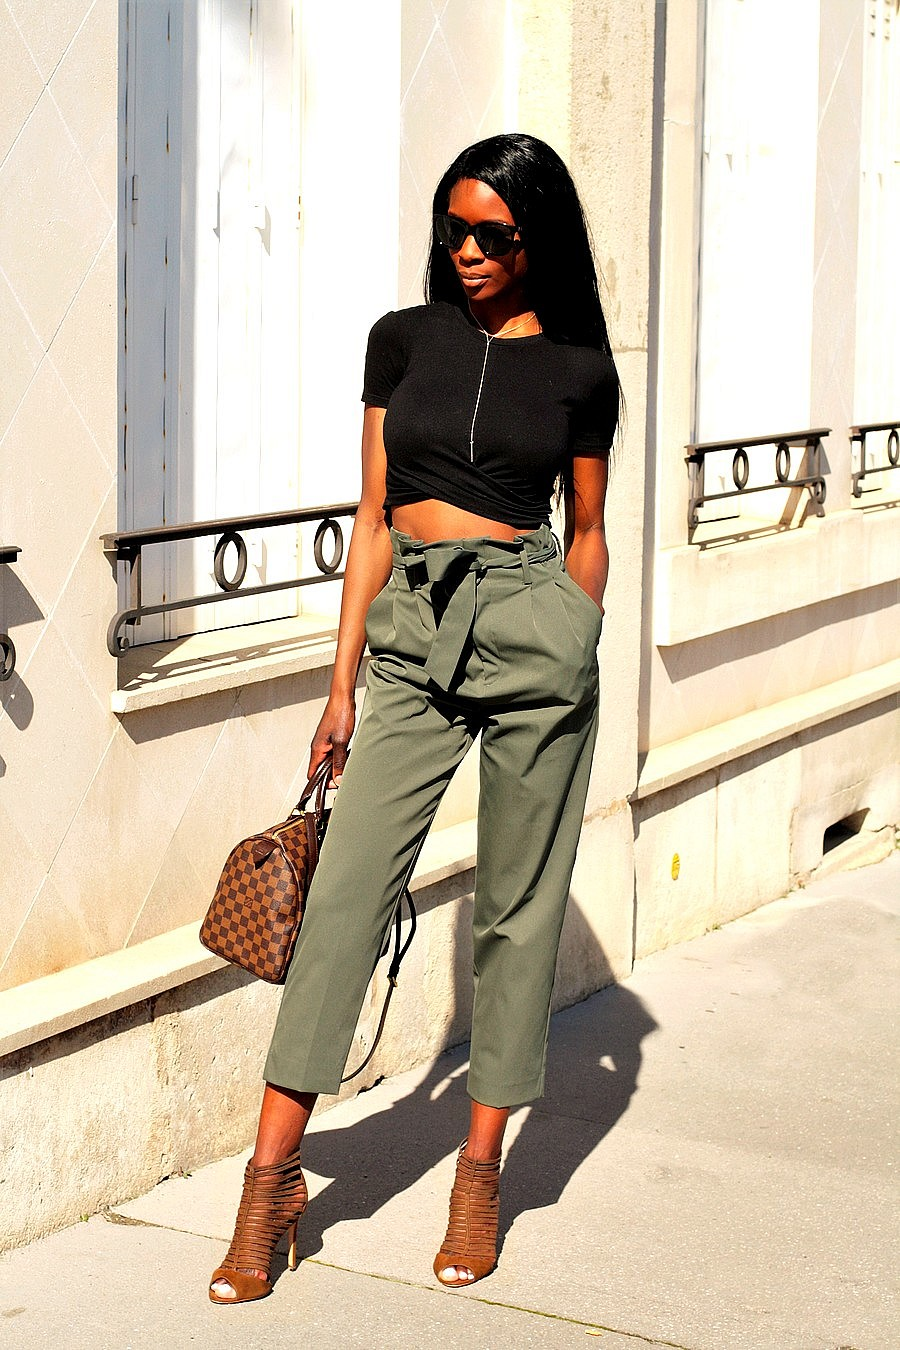 comment-porter-crop-top-tendance-printemps-ete